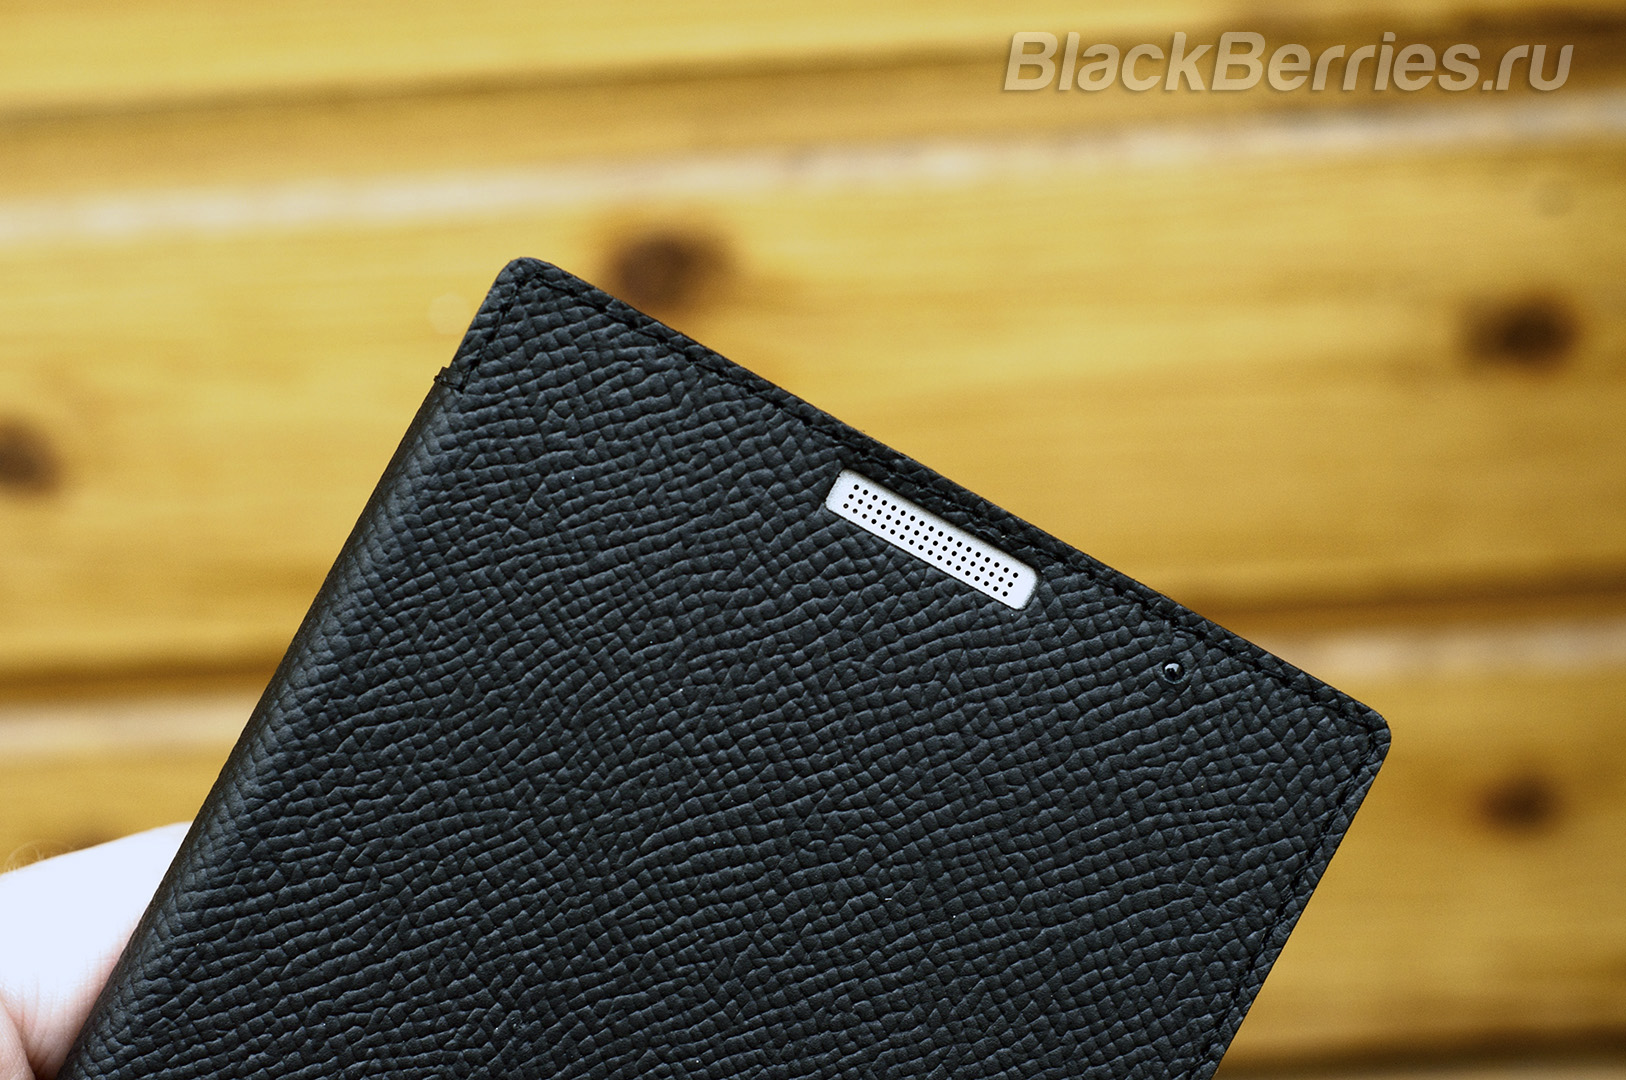 BlackBerry-Passport-Silver-Edition-Cases-11